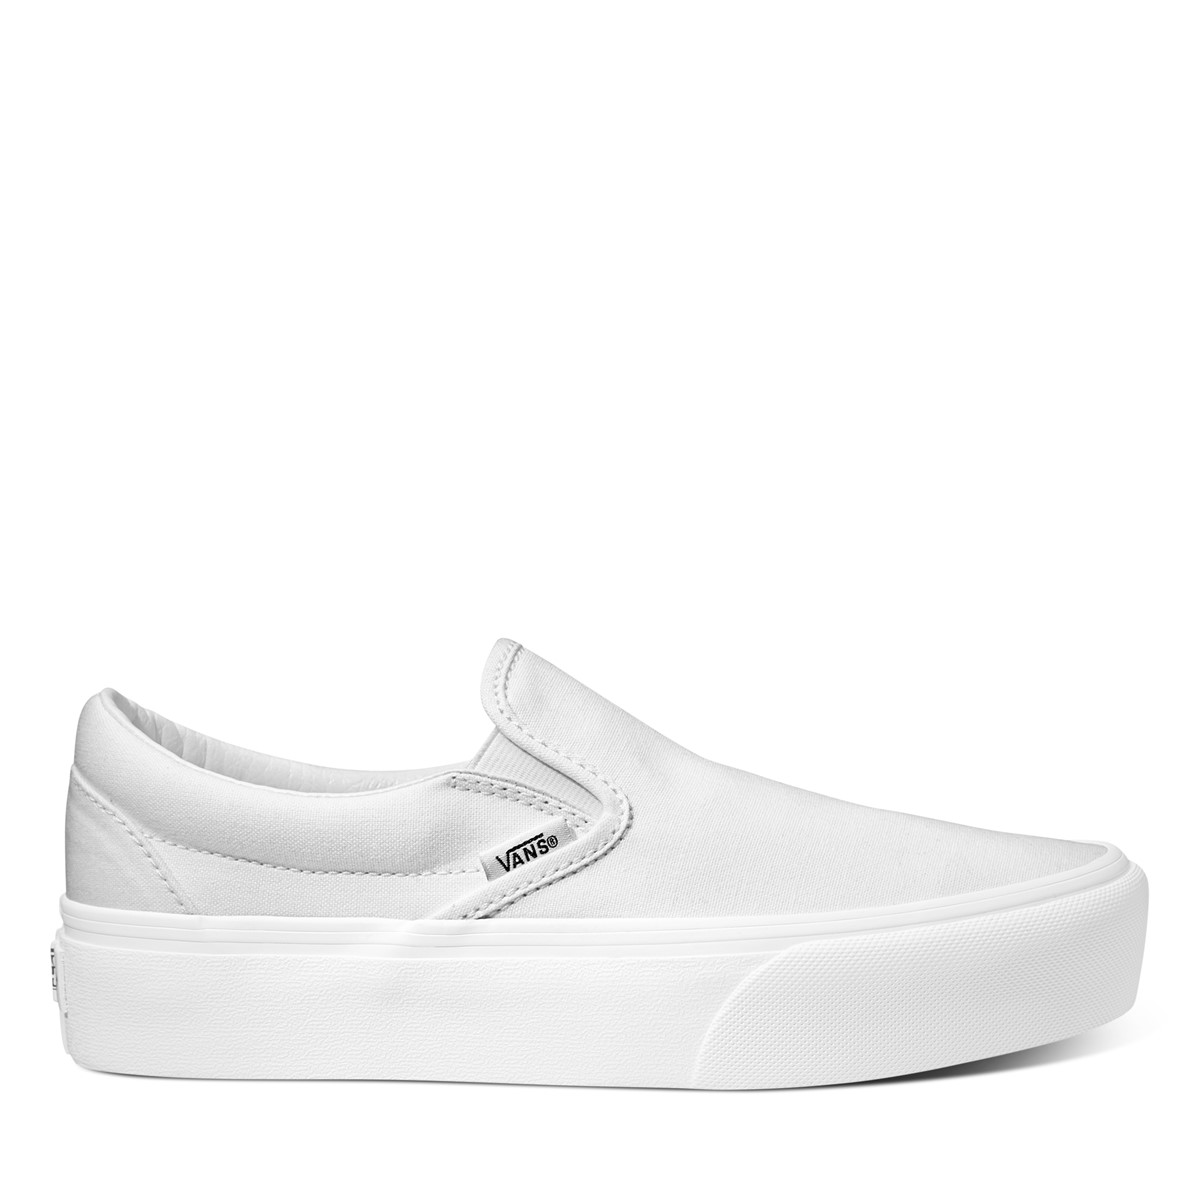 Women's Platform Slip-Ons in White